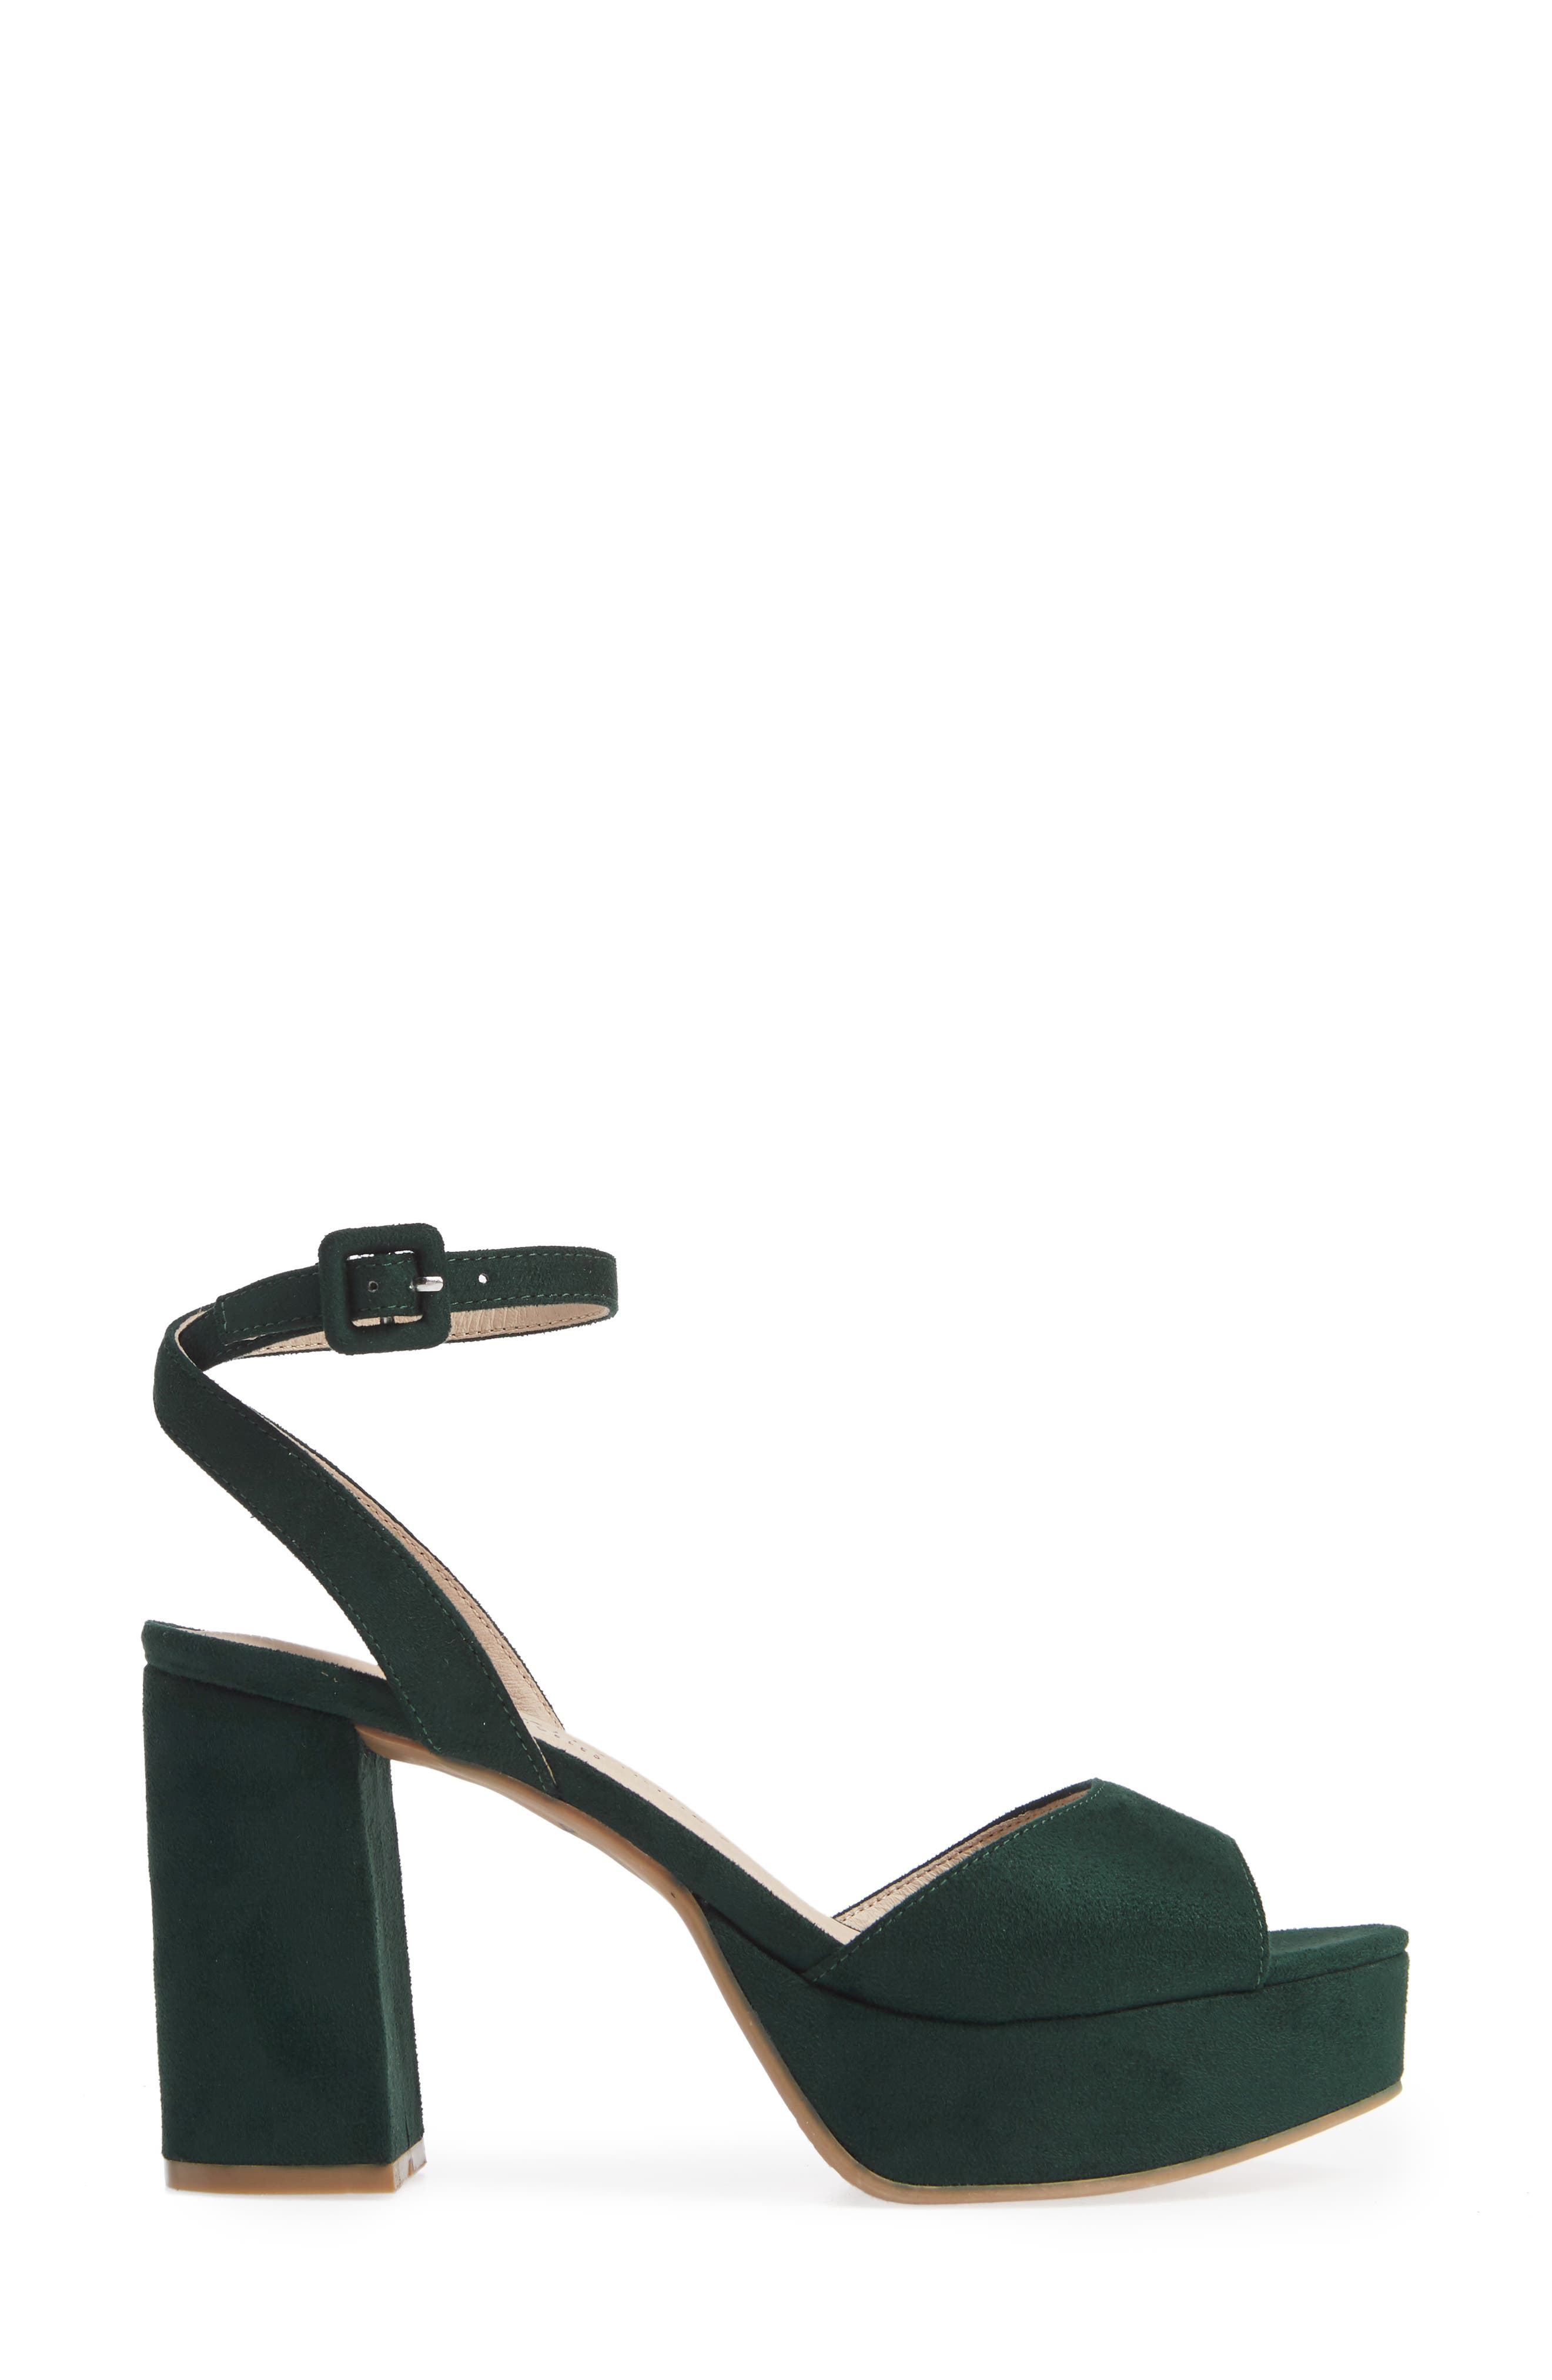 CHINESE LAUNDRY, Theresa Platform Sandal, Alternate thumbnail 3, color, FOREST GREEN SUEDE